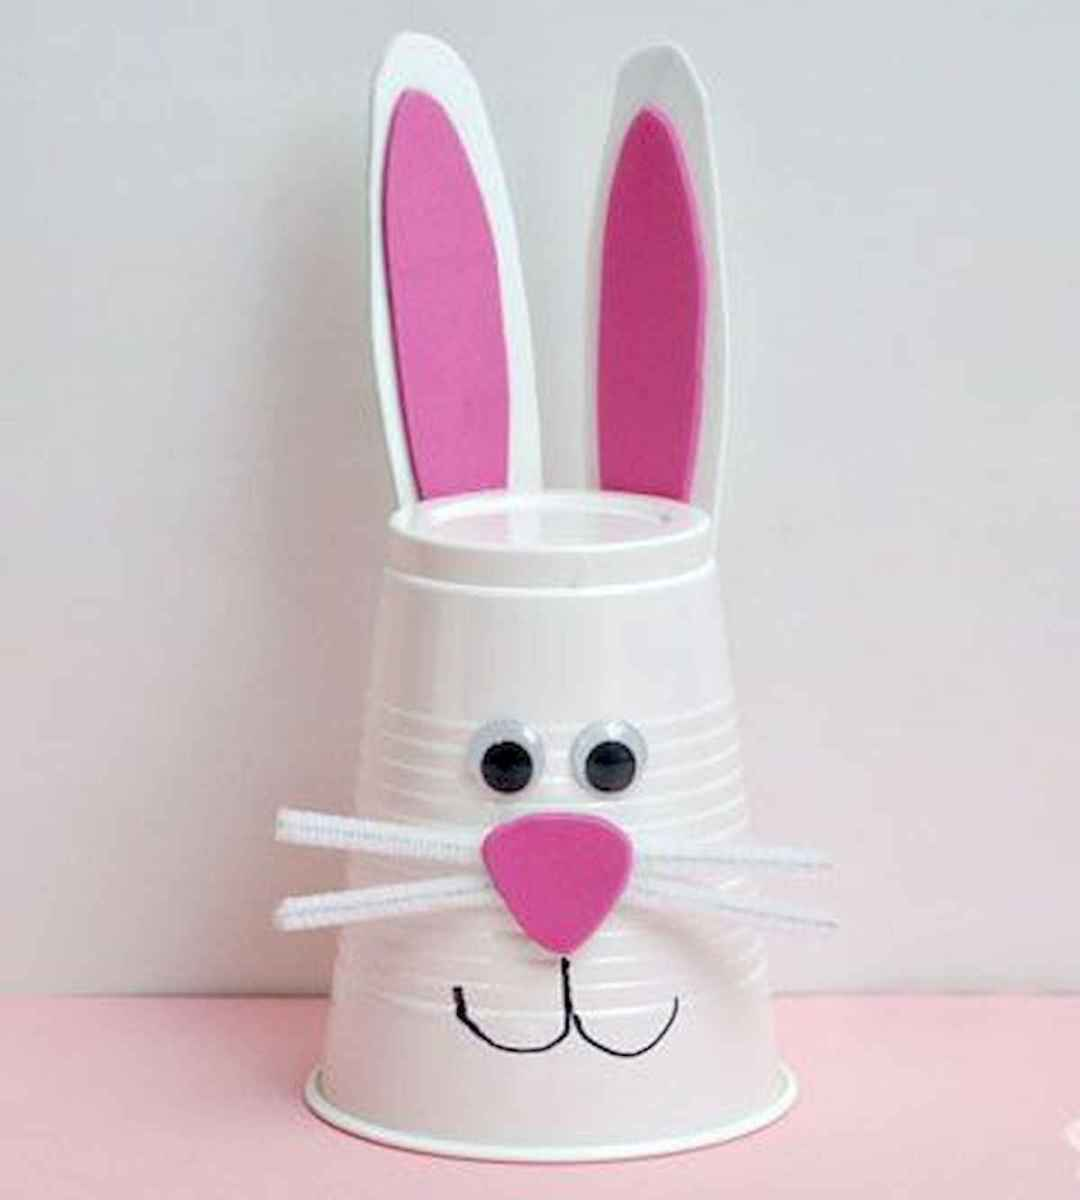 50 inspiring easy craft ideas for kids you must try (13)